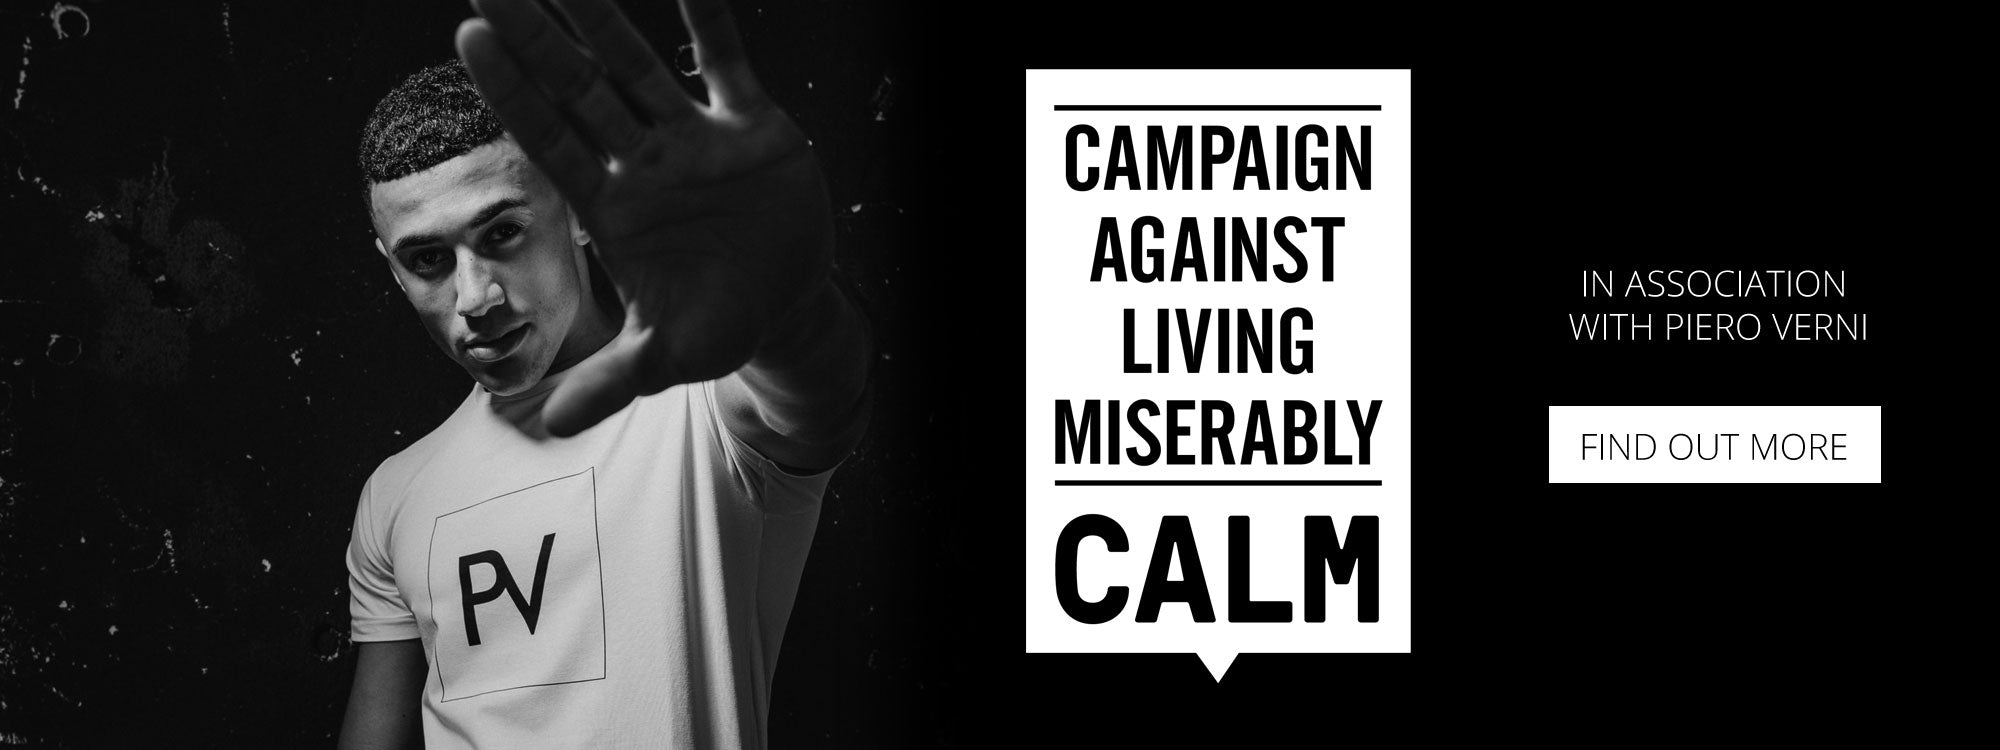 Calm Campaign Against Living Miserably in association with Piero Verni - Find out more